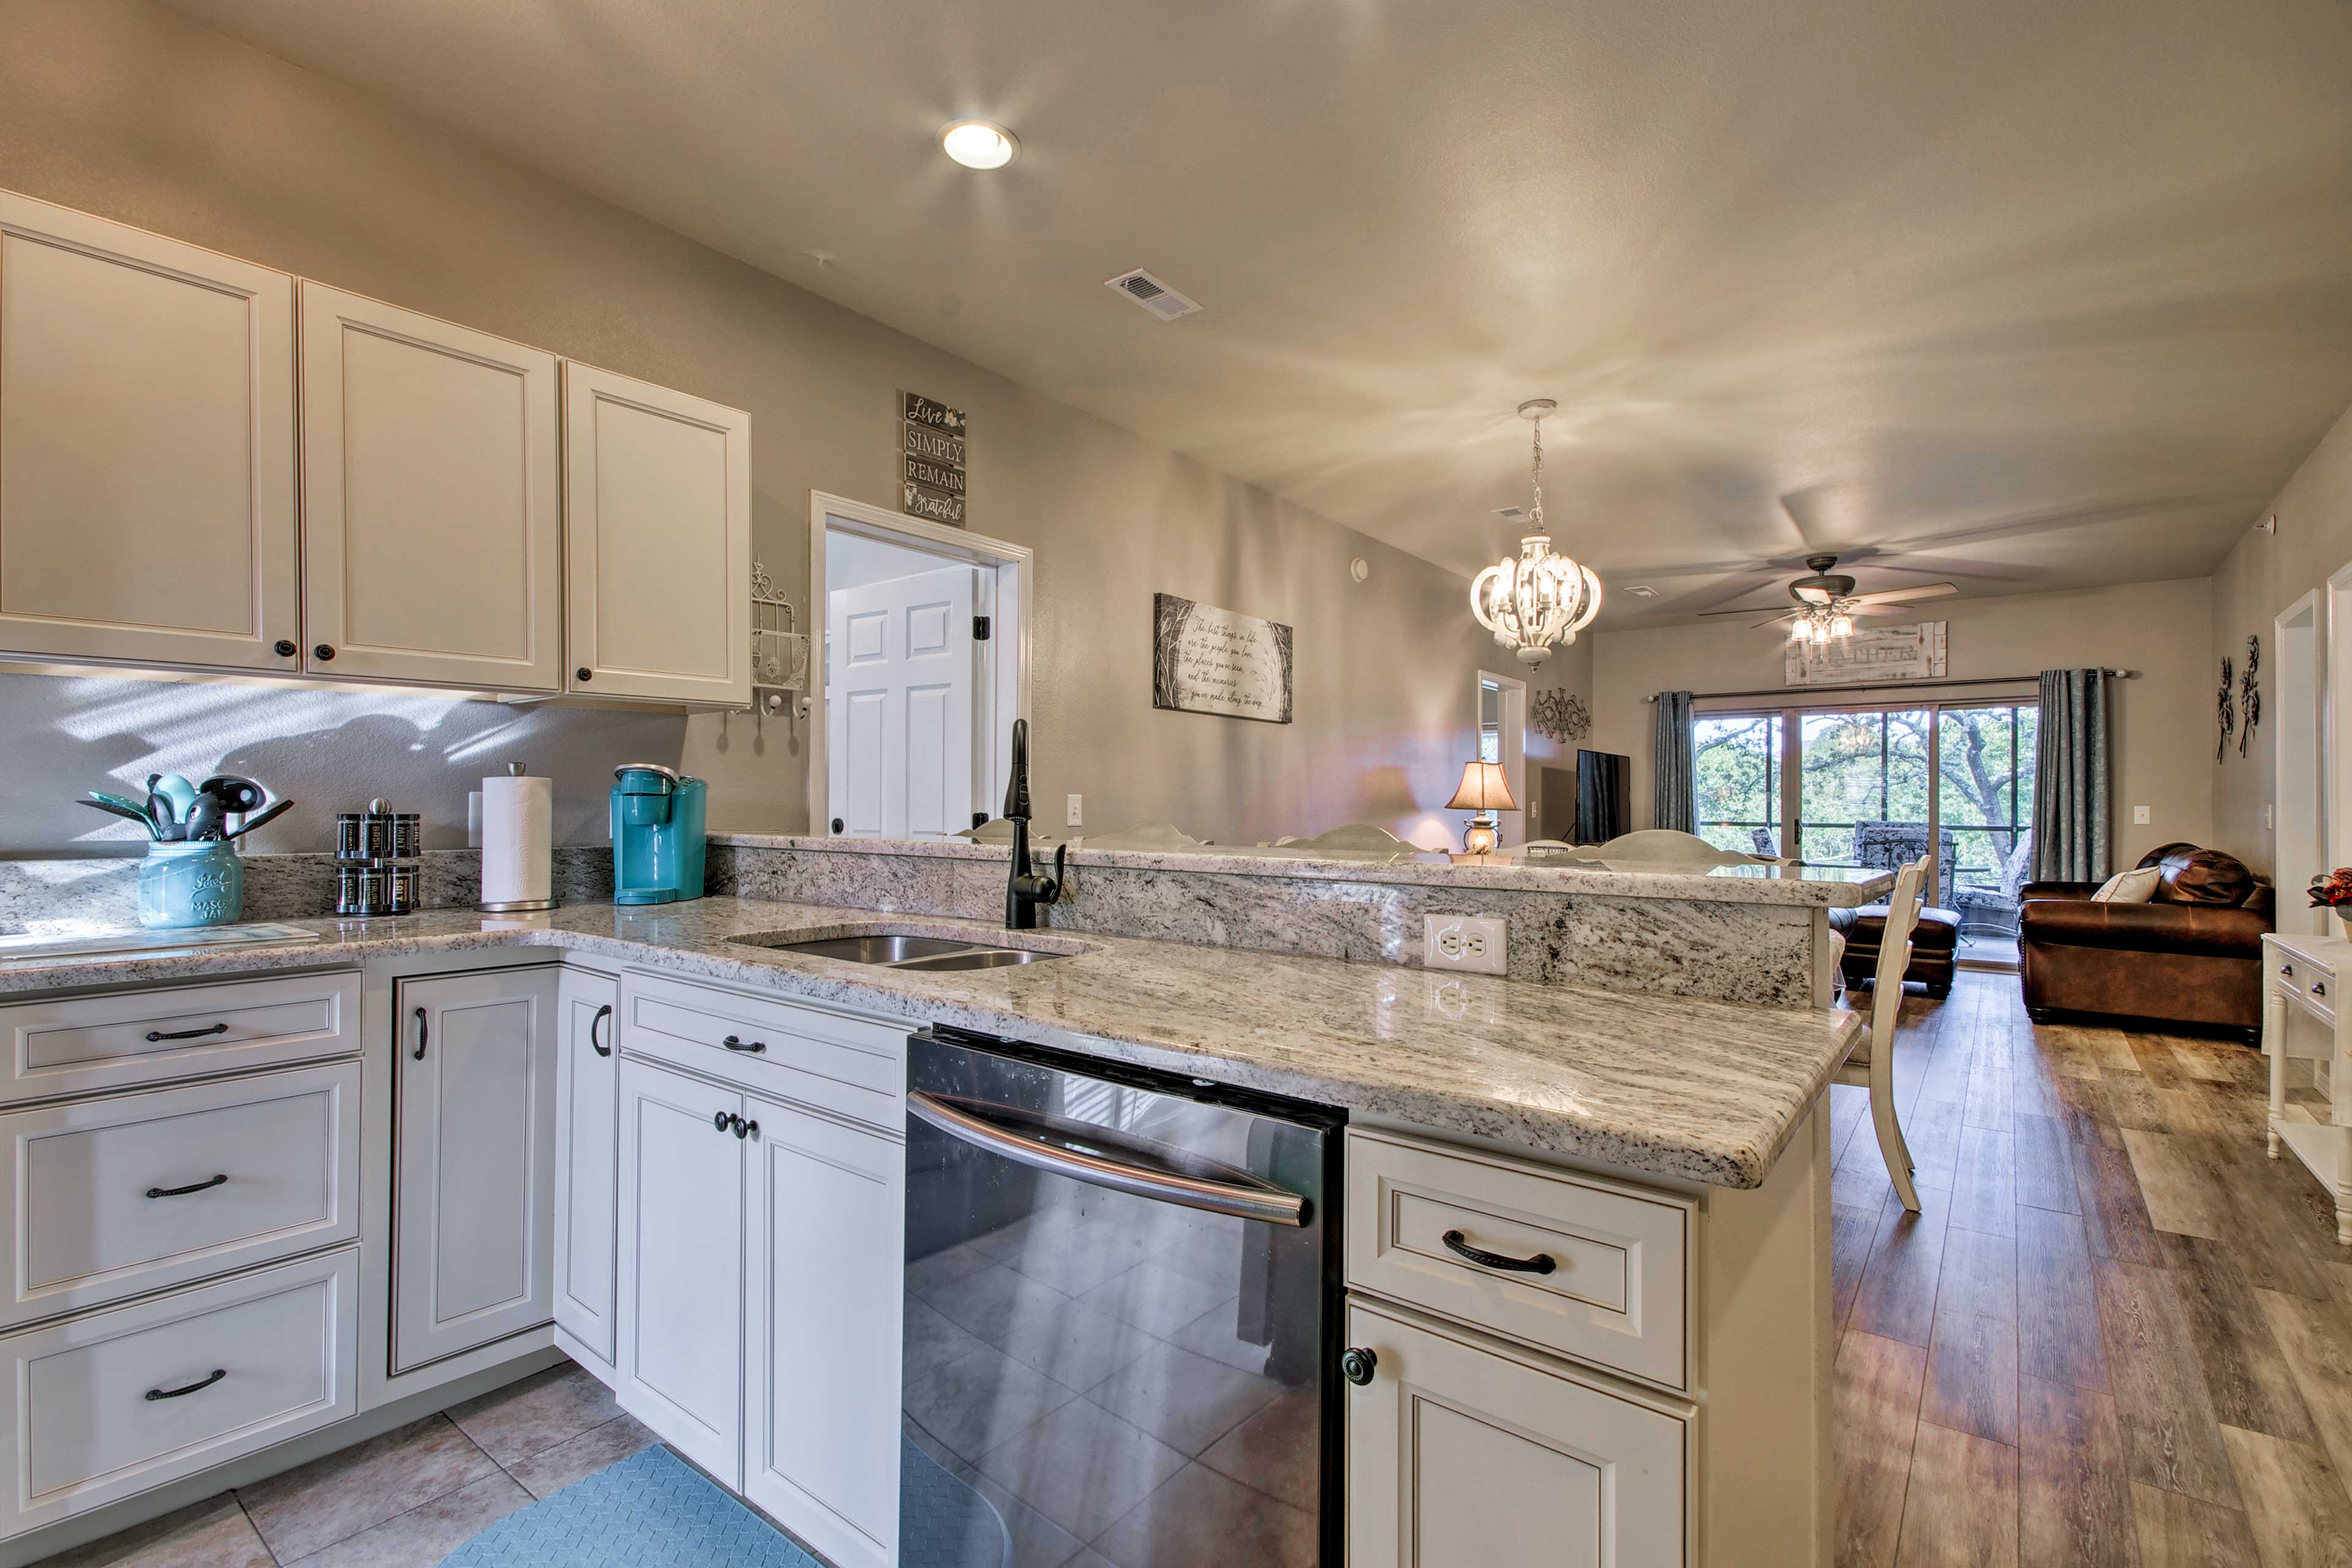 The modern kitchen features stainless steel appliances and granite counter tops.